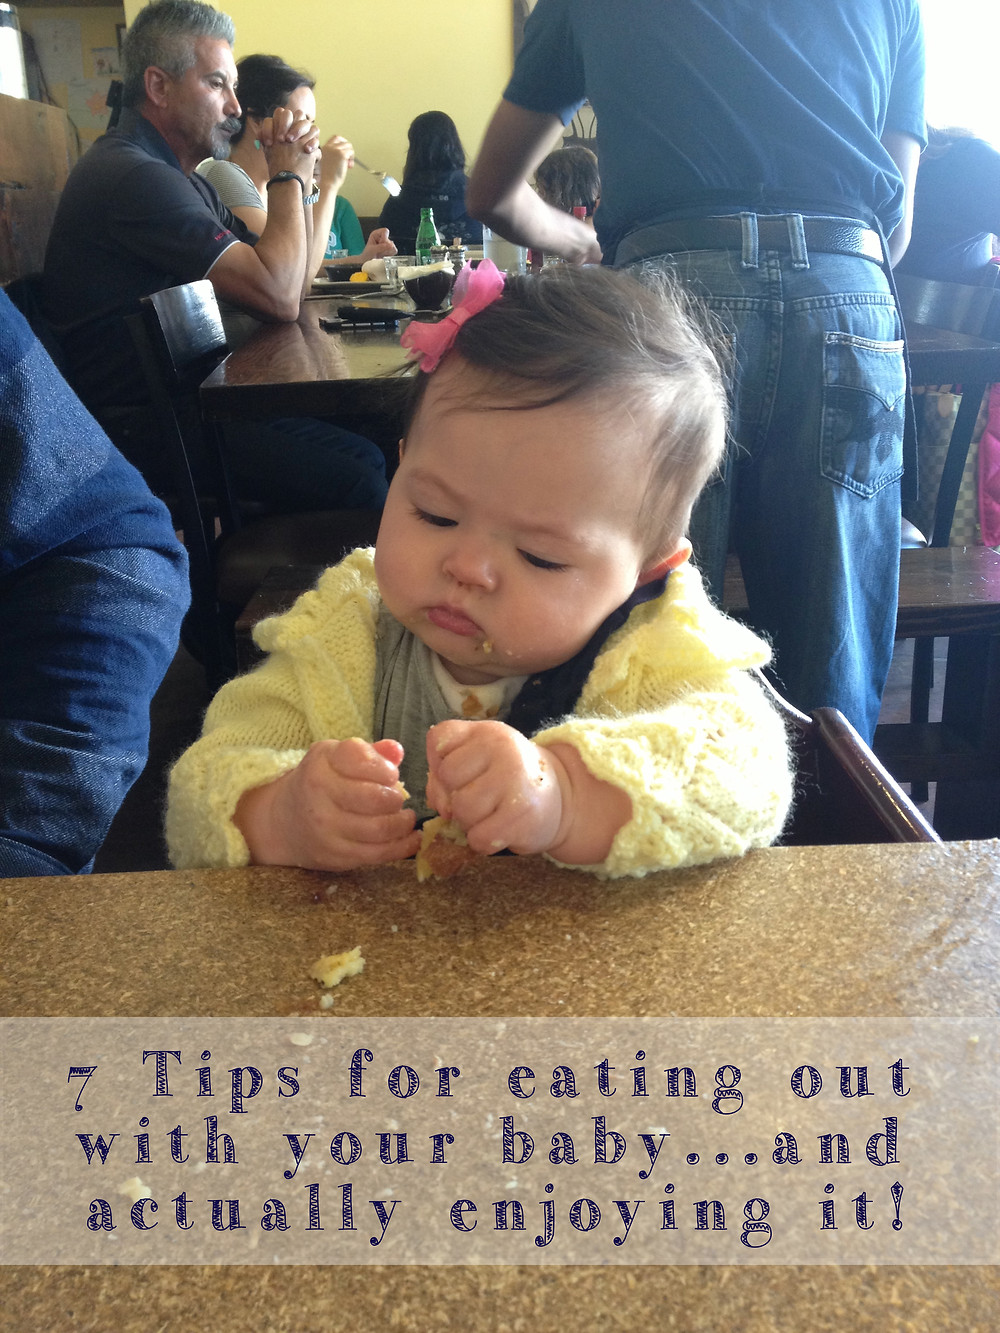 Eating_out_with_baby.jpg